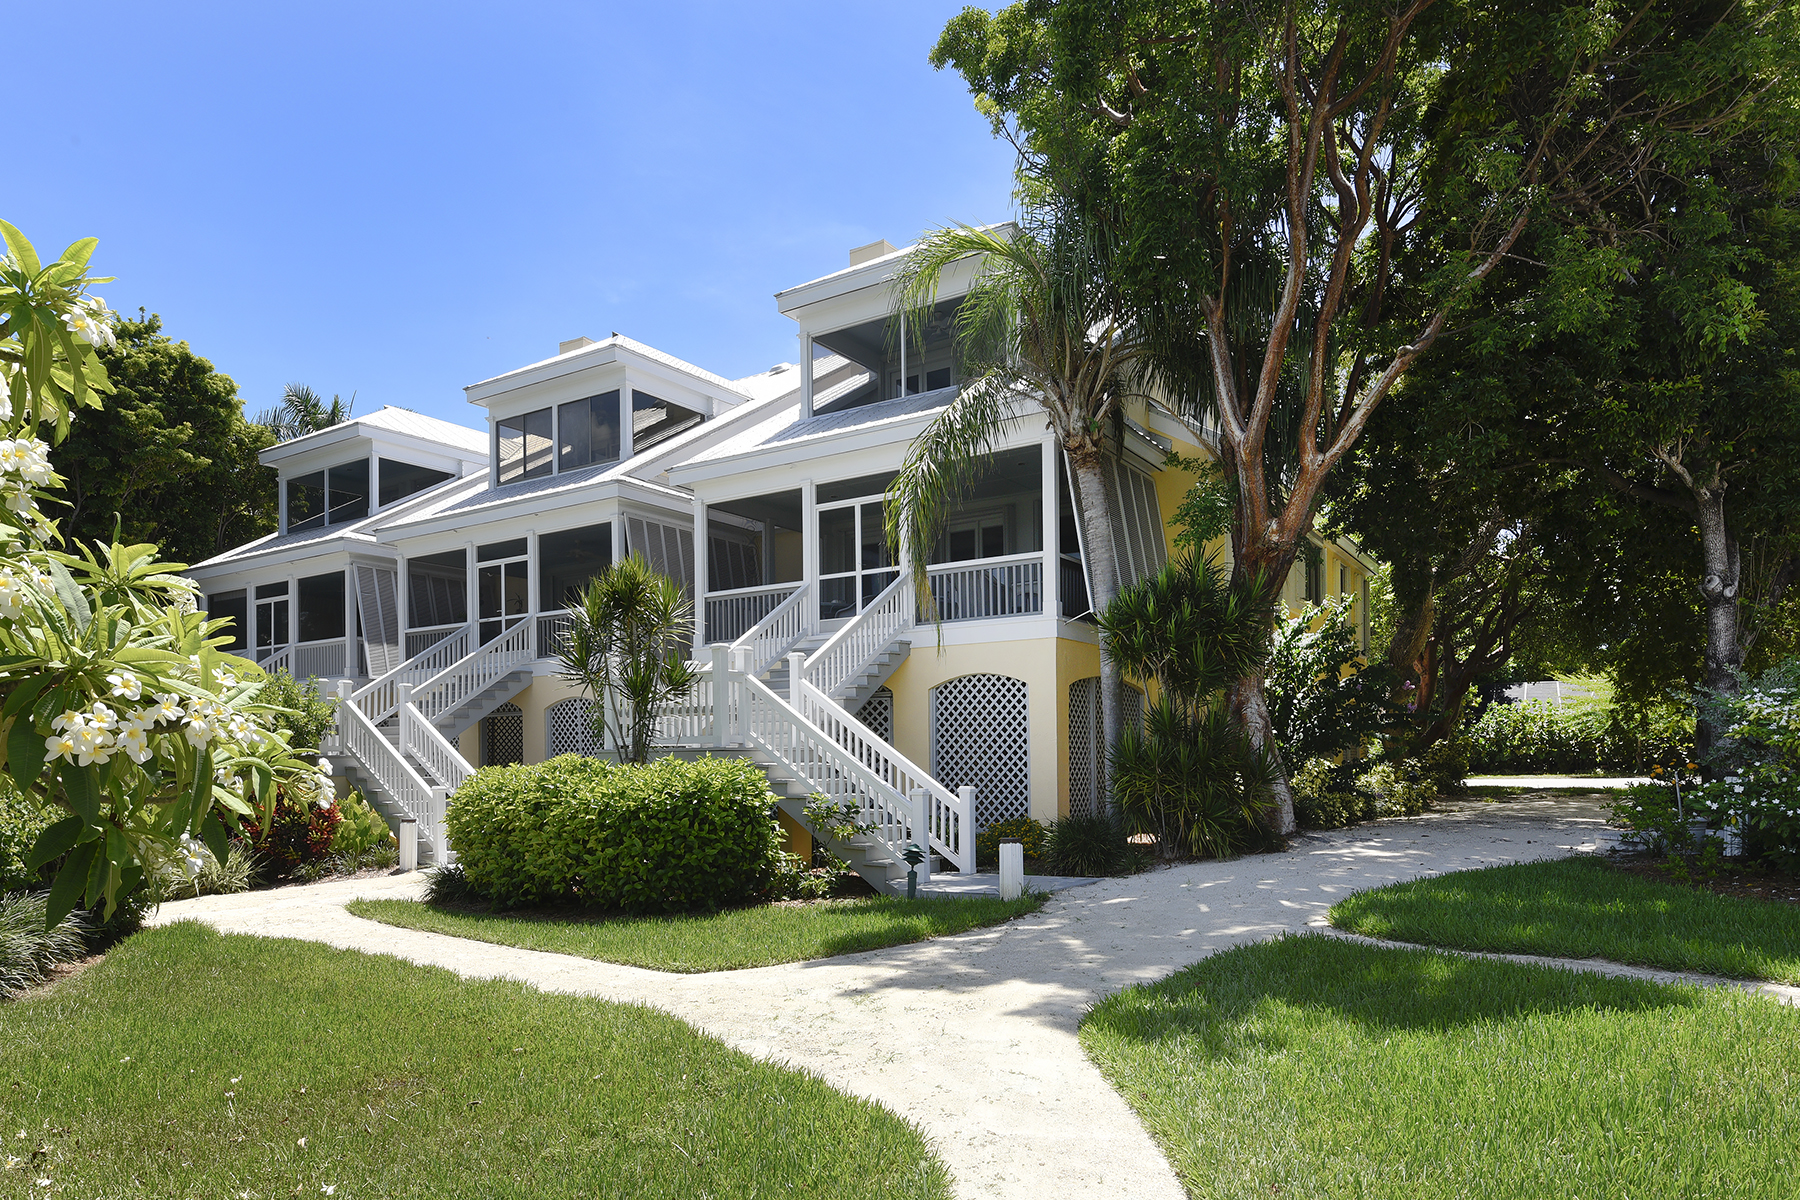 타운하우스 용 매매 에 Exclusive Tarpon Flats 81250 Overseas Highway Unit #7 Islamorada, 플로리다 33036 미국